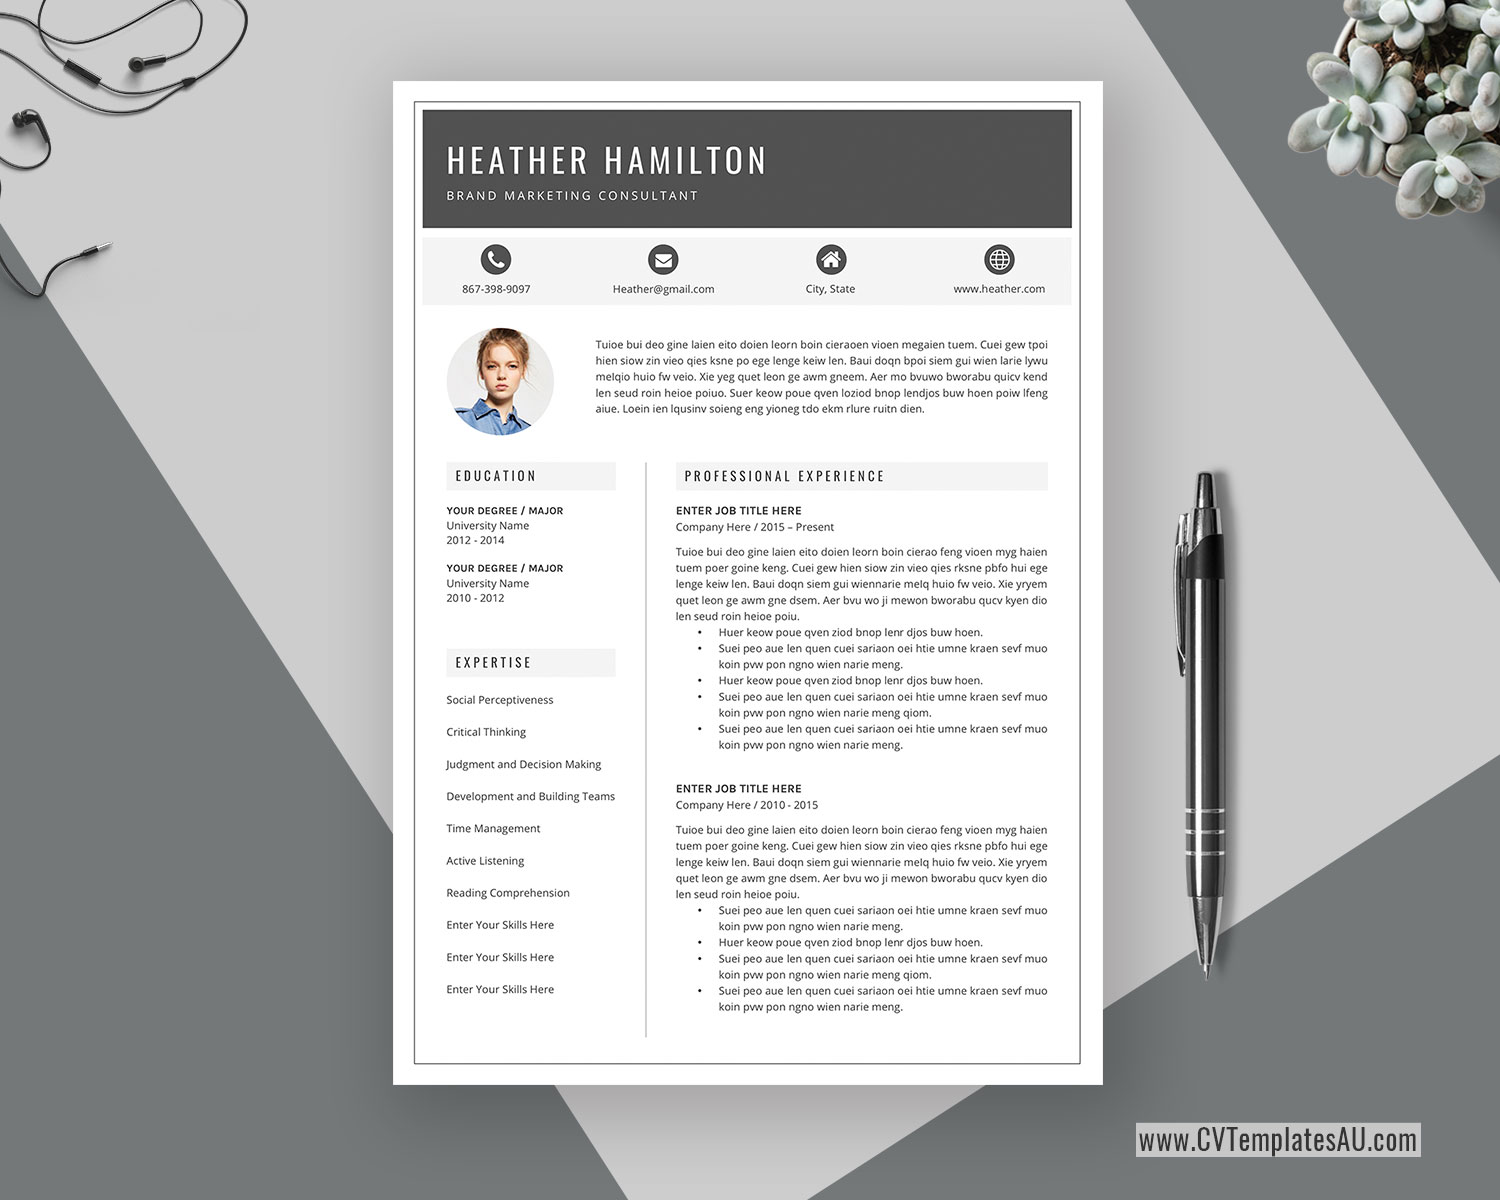 Modern Cv Template For Microsoft Word Cover Letter Professional Curriculum Vitae Editable Resume Modern Resume Simple Resume Teacher Resume Instant Download Cvtemplatesau Com